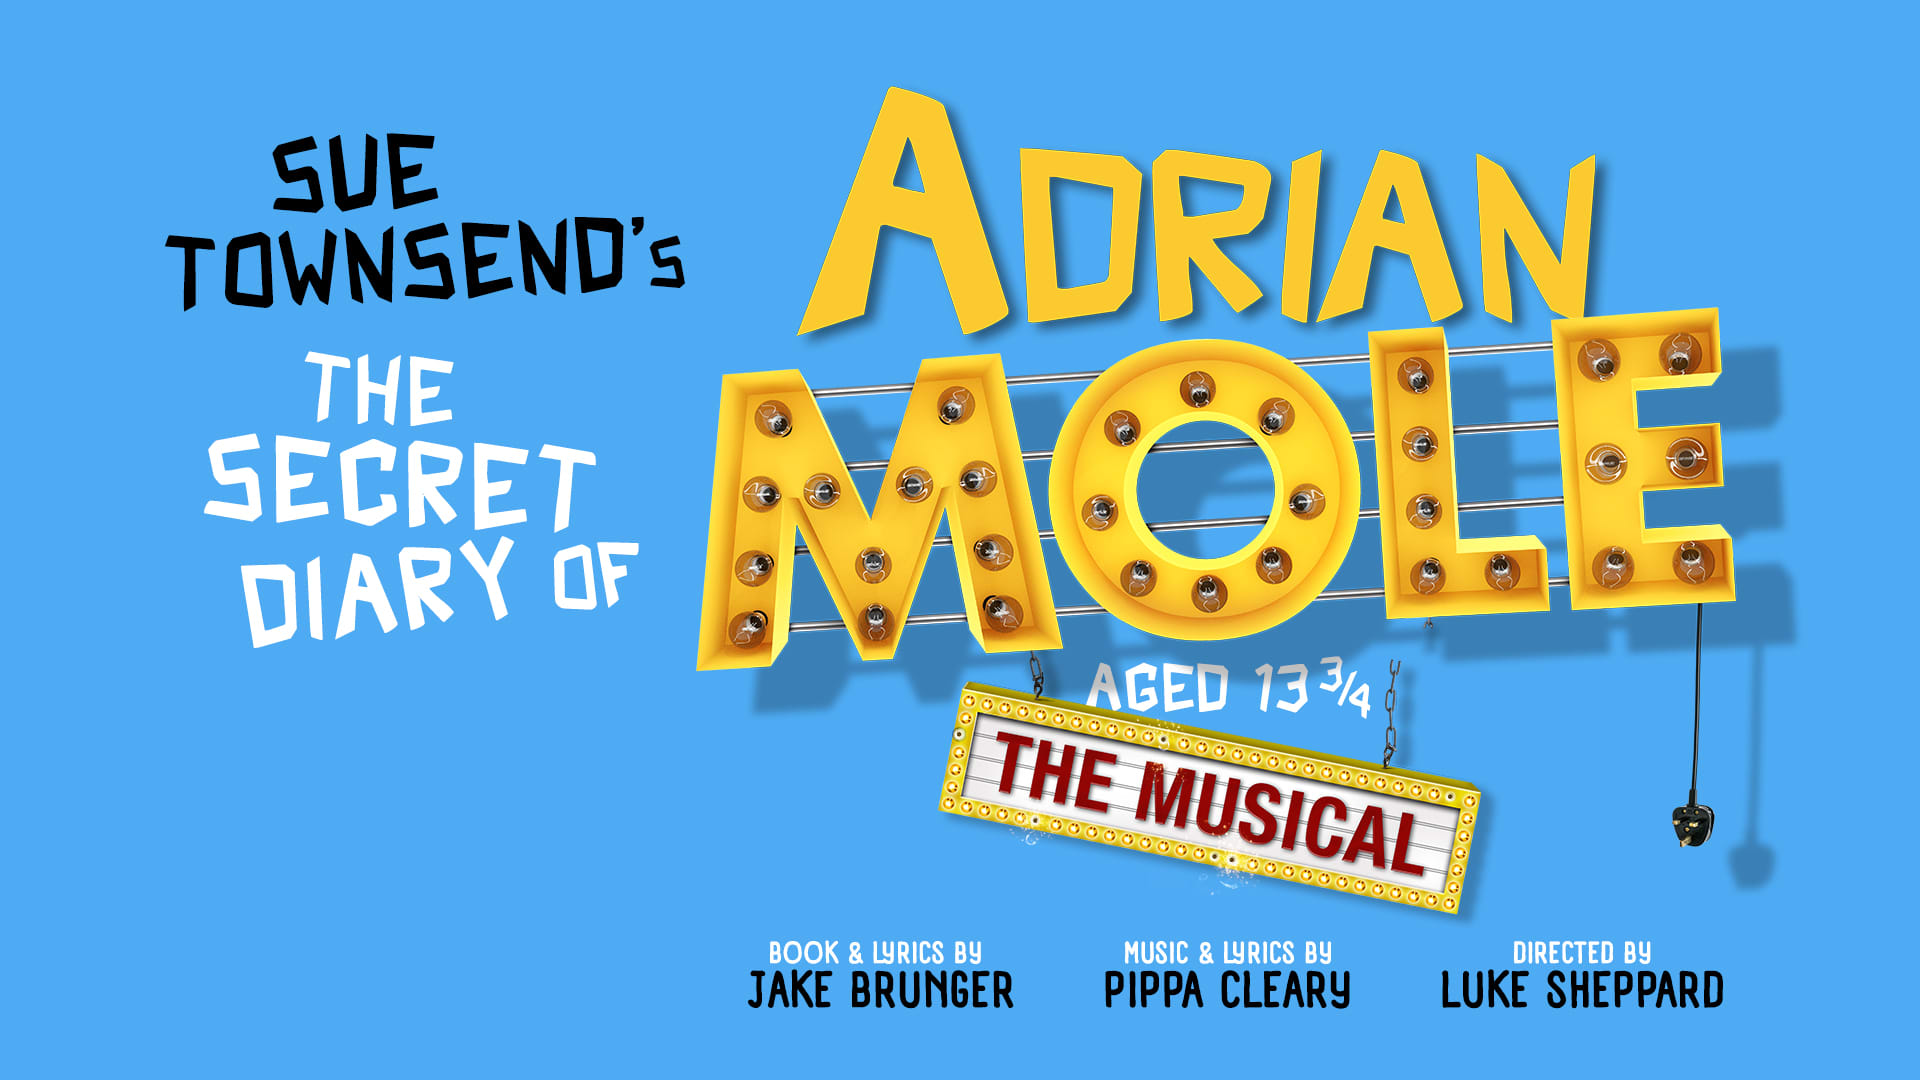 Sue Townsend's The Secret Diary of Adrian Mole Aged 13 3/4 The Musical at Ambassadors Theatre